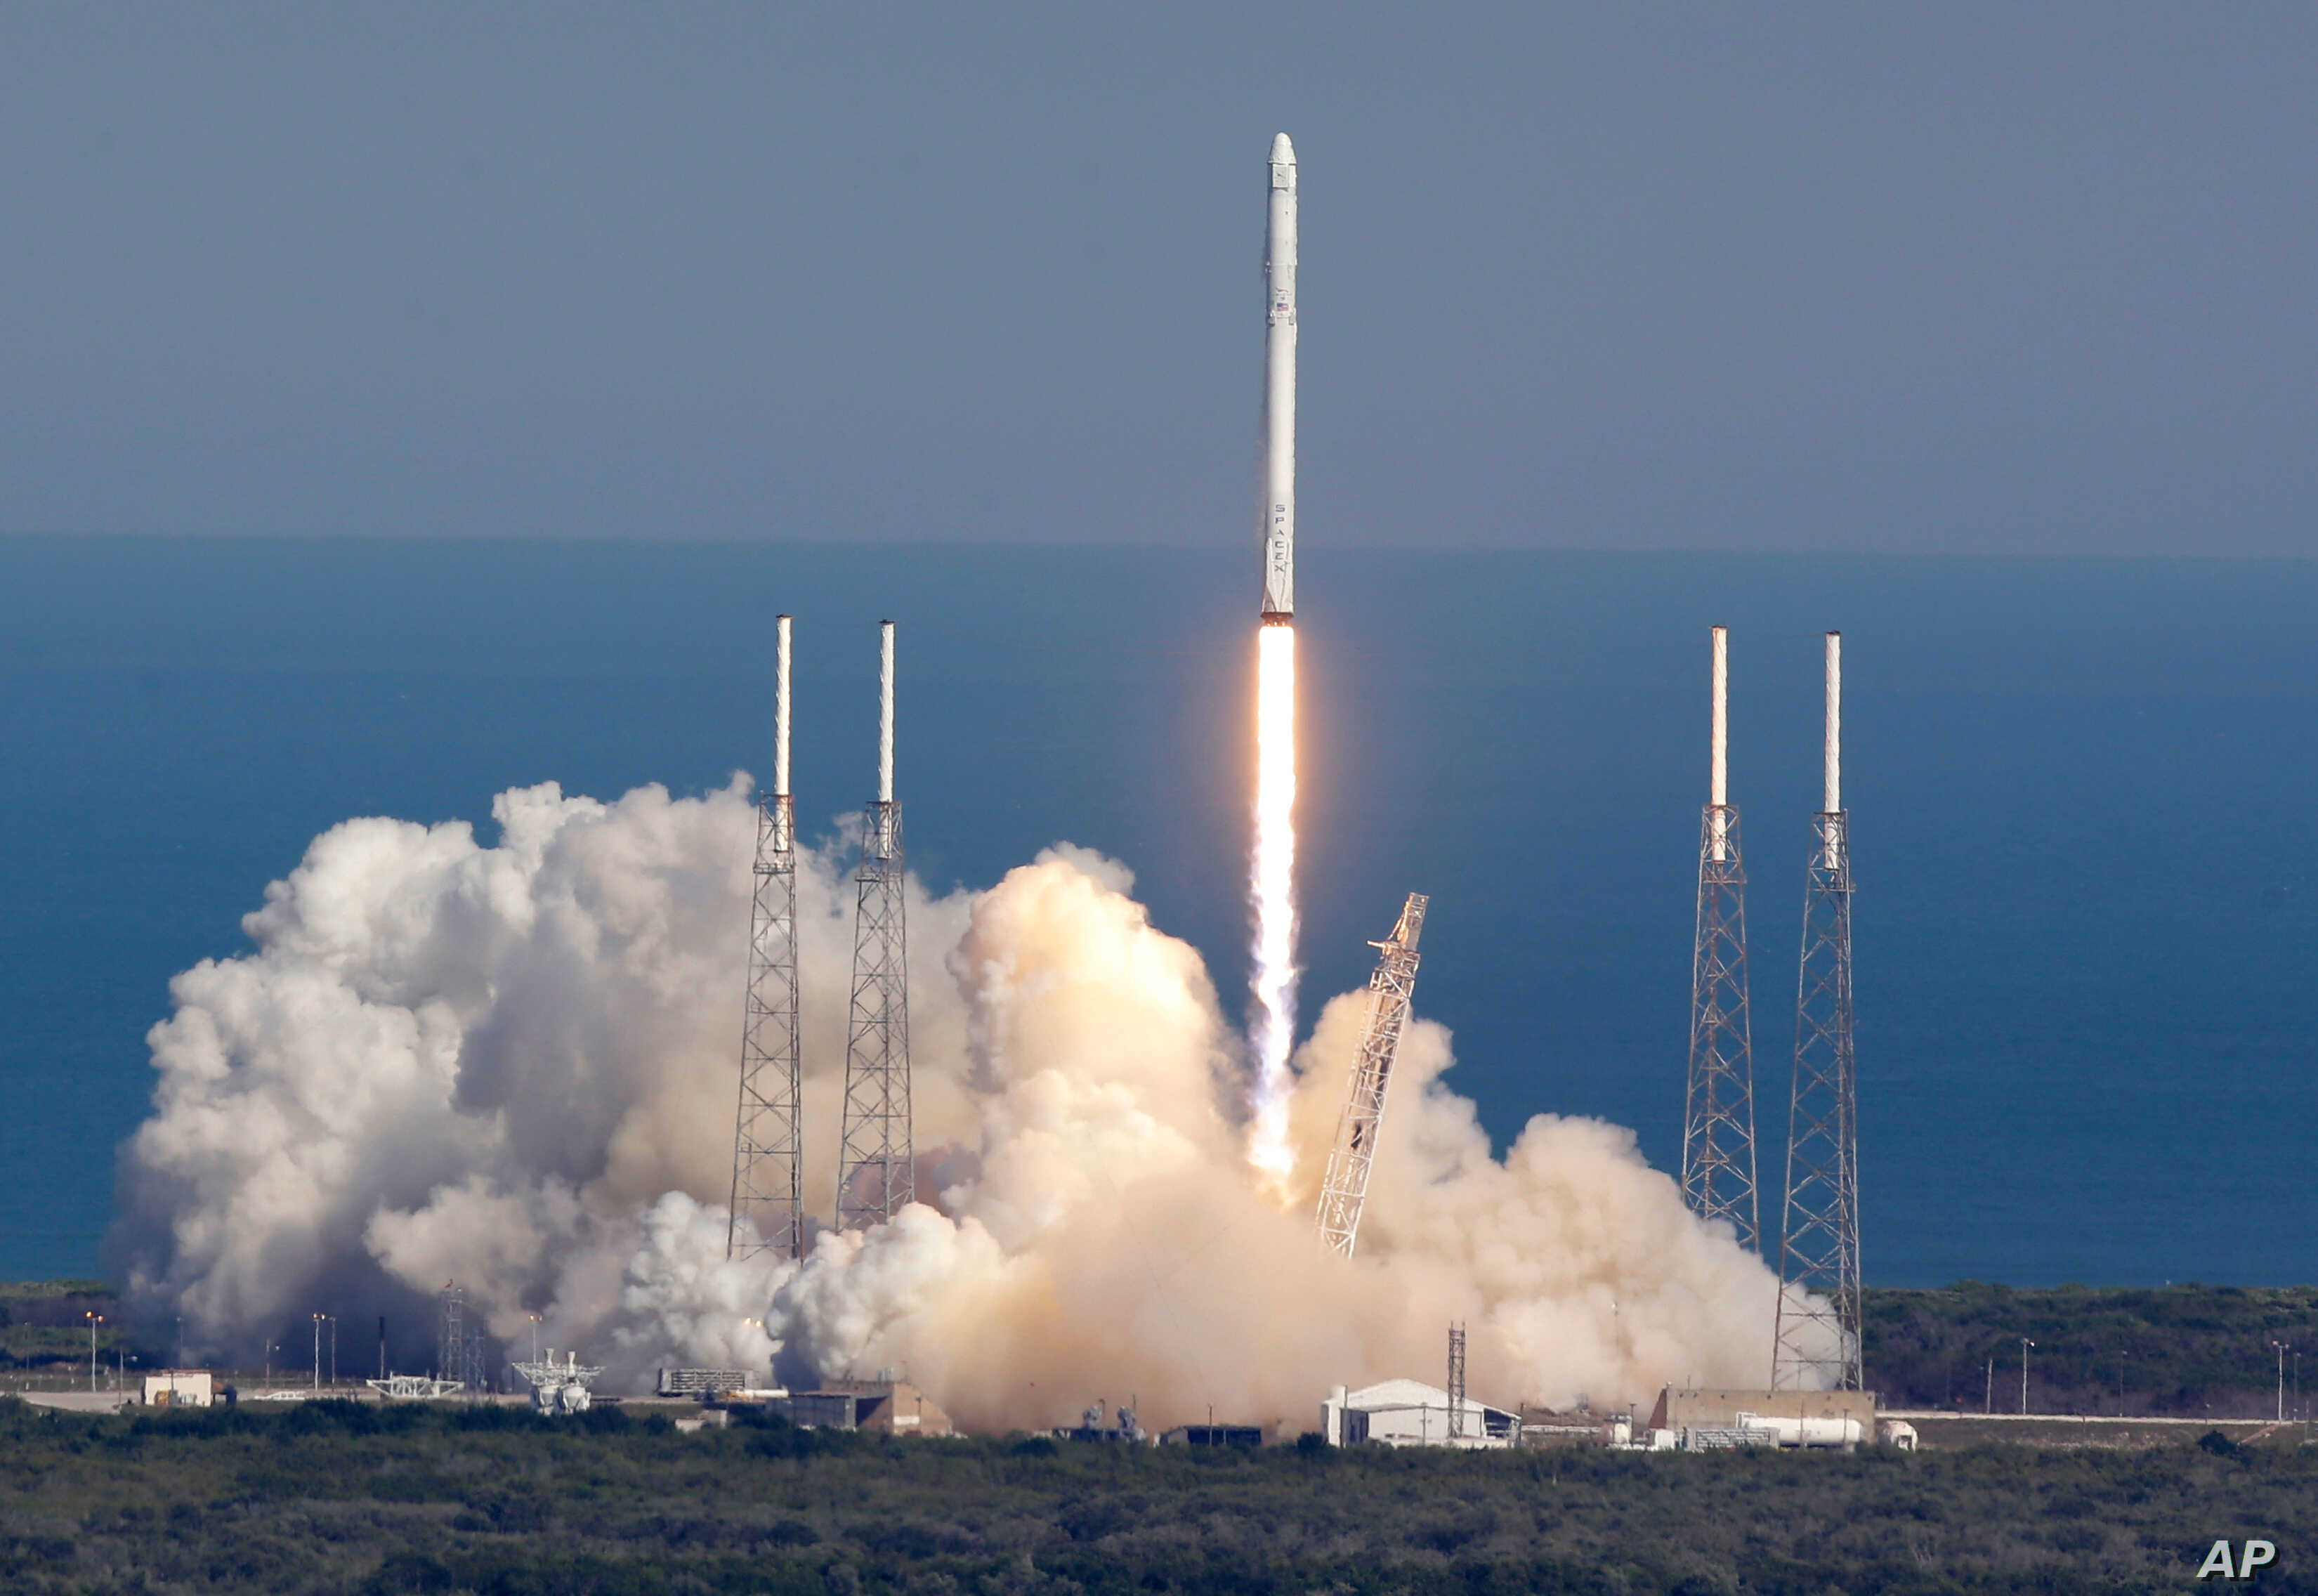 The SpaceX Falcon 9 rocket lifts off from launch complex 40 at the Kennedy Space Center in Cape Canaveral, Florida, April 8, 2016.